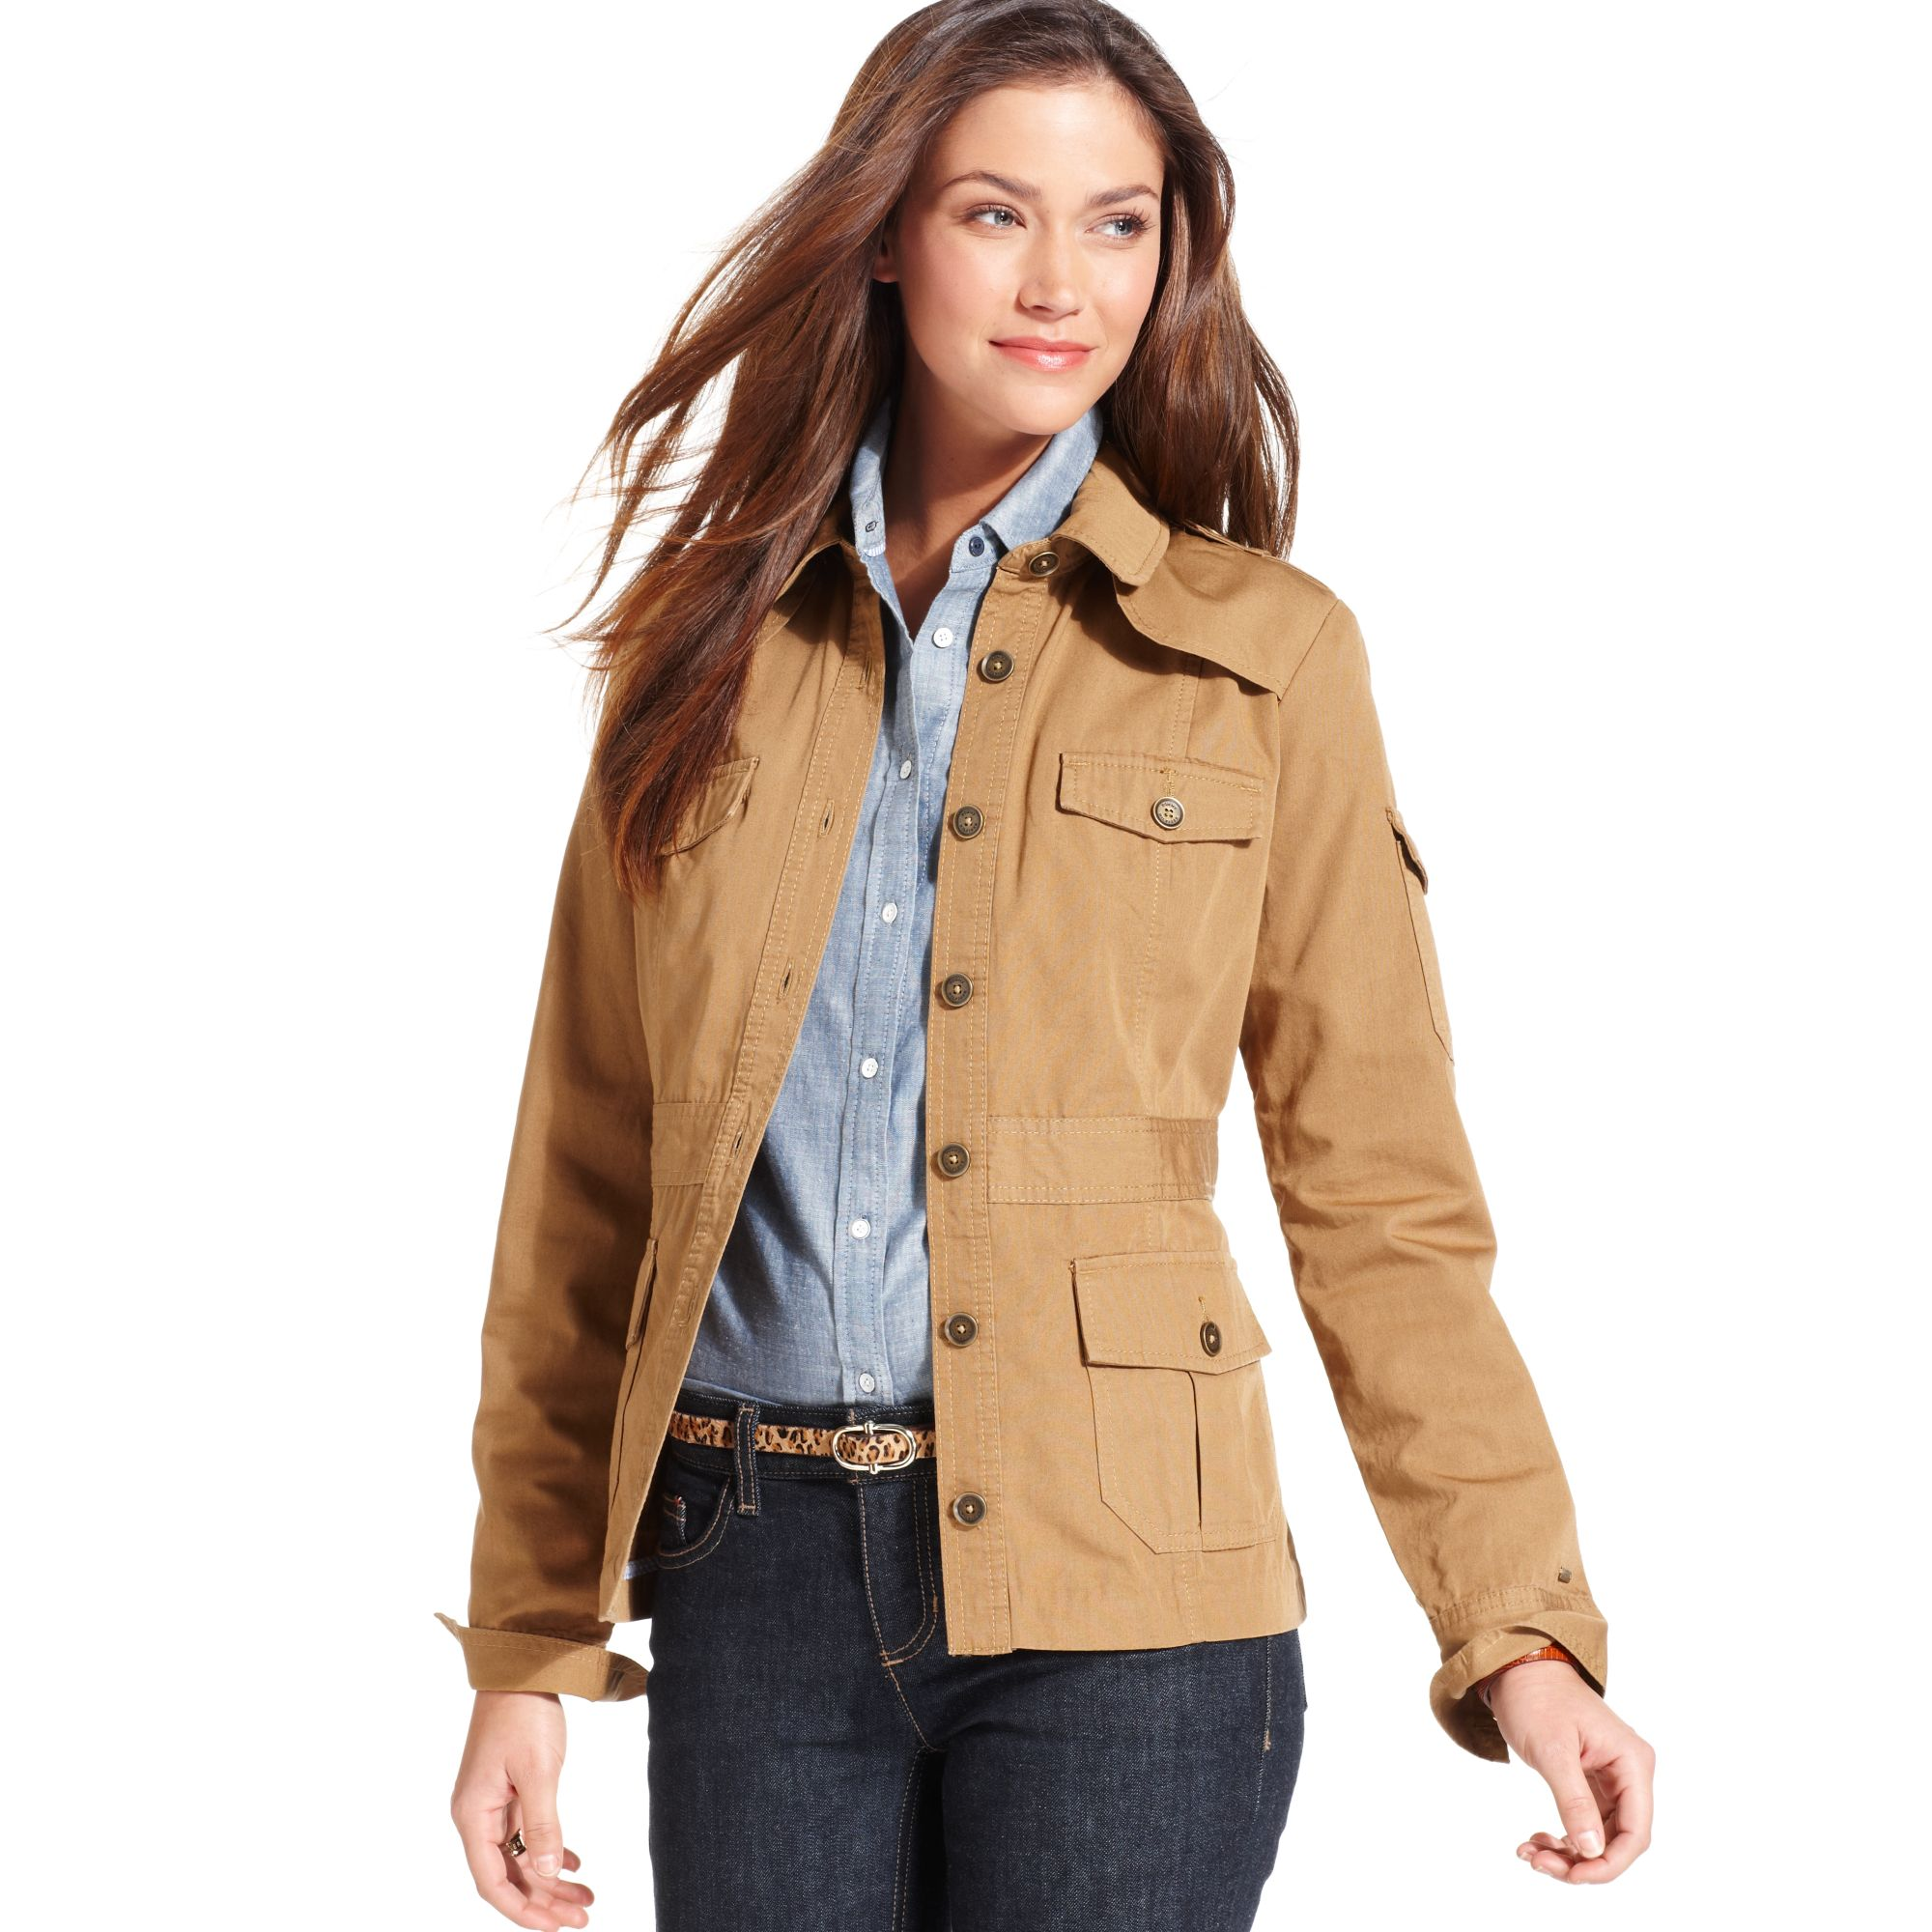 Tommy hilfiger Lightweight Safari Jacket in Natural | Lyst